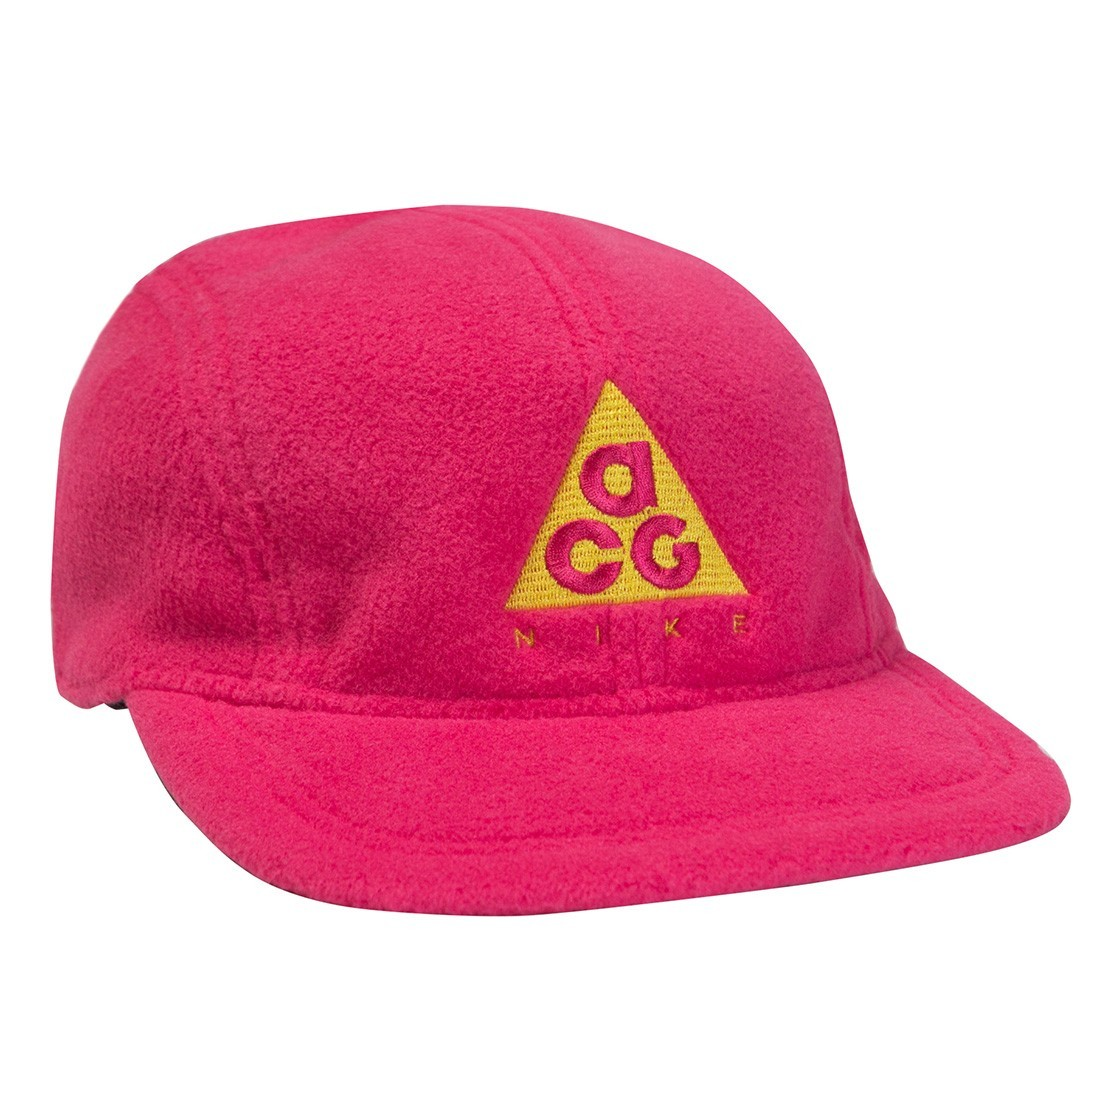 a7f6f160 nike men u nrg aw84 cap acg fleece cap rush pink opti yellow